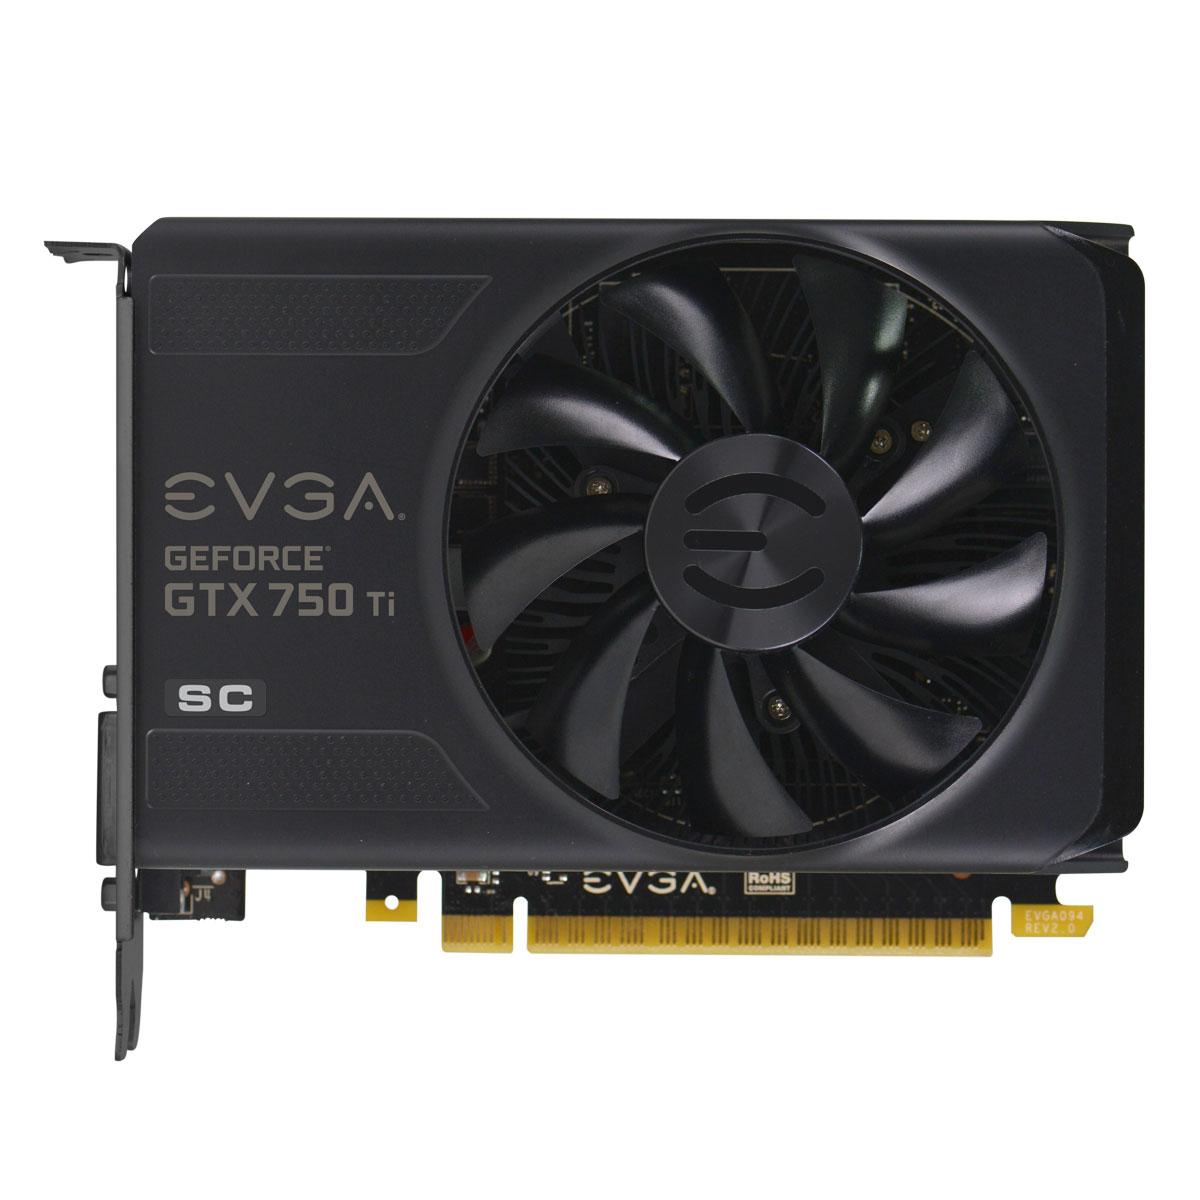 Placa de Vídeo Geforce GTX750 Ti 2GB SC DDR5 128Bits 02G-P4-3753-KR - EVGA